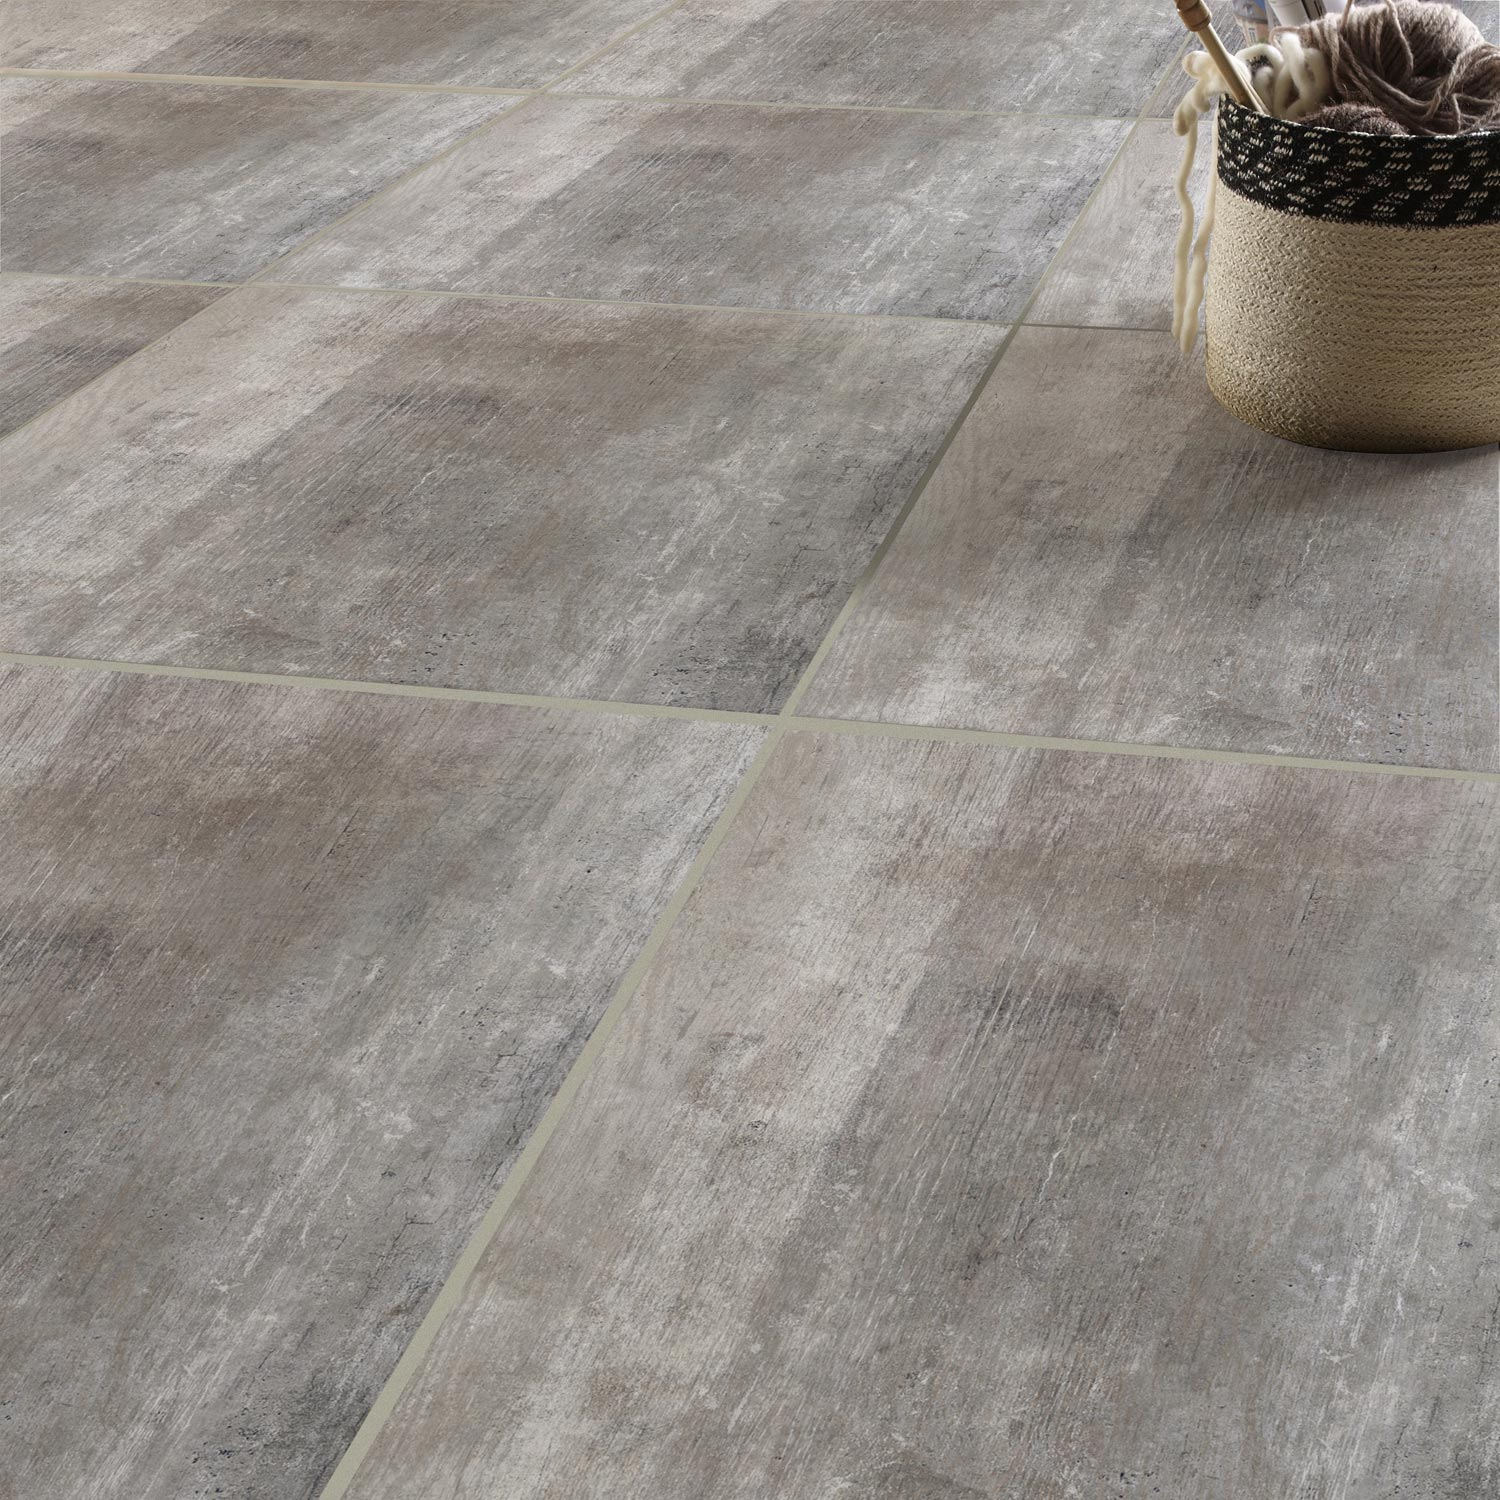 Carrelage int rieur saloon en gr s c rame maill gris for Carrelage gres